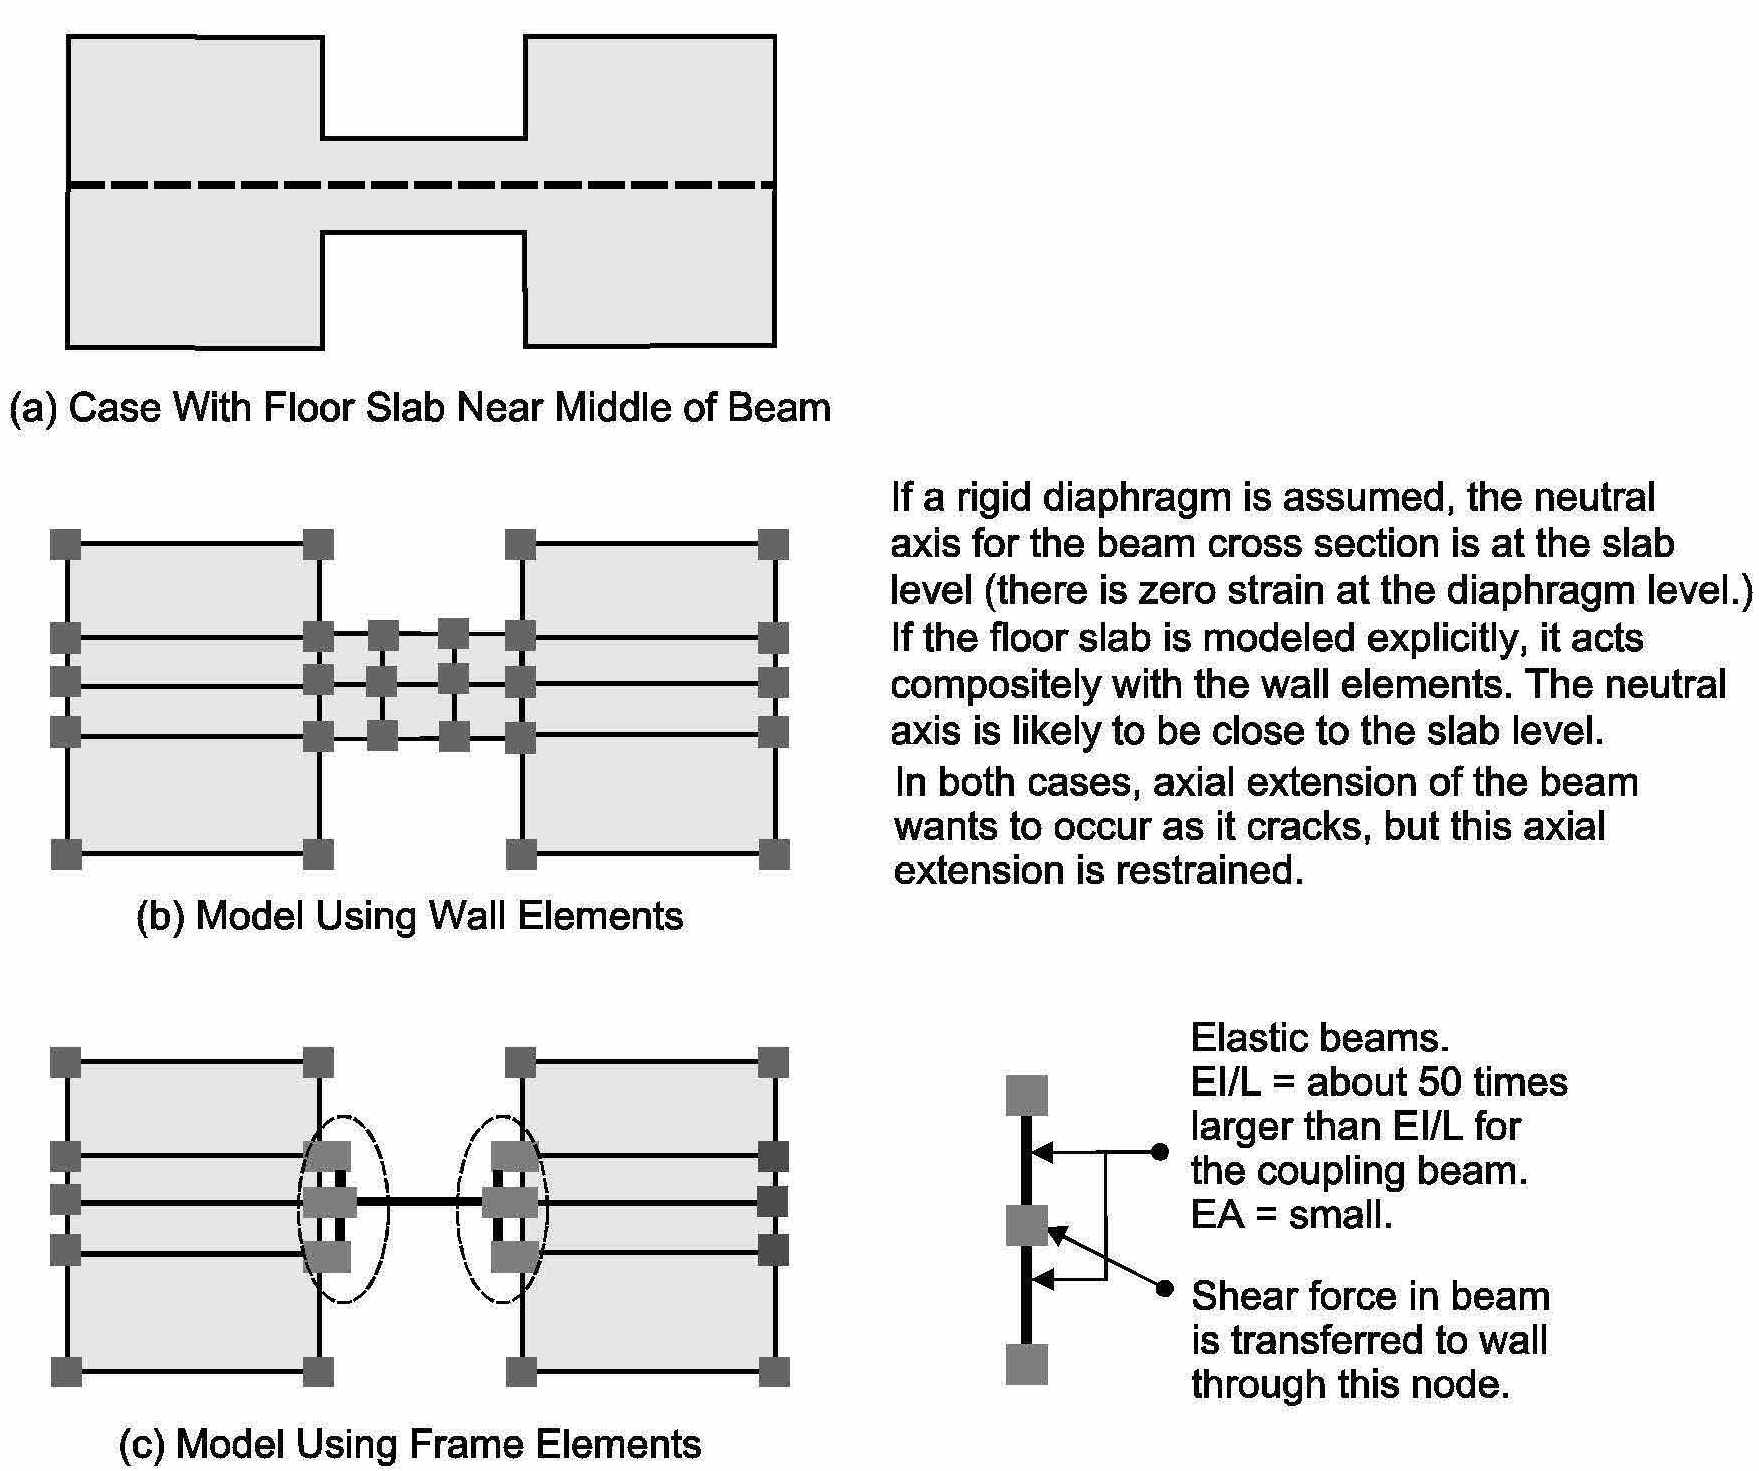 Modeling Of Coupling Beams In Shear Walls Perform 3d Computers Tutorial On How To Calculate Force Bending Figure 4 Shows Possible Models For The Case Where Floor Level Is Within Depth Beam Points Consider Are Similar Those